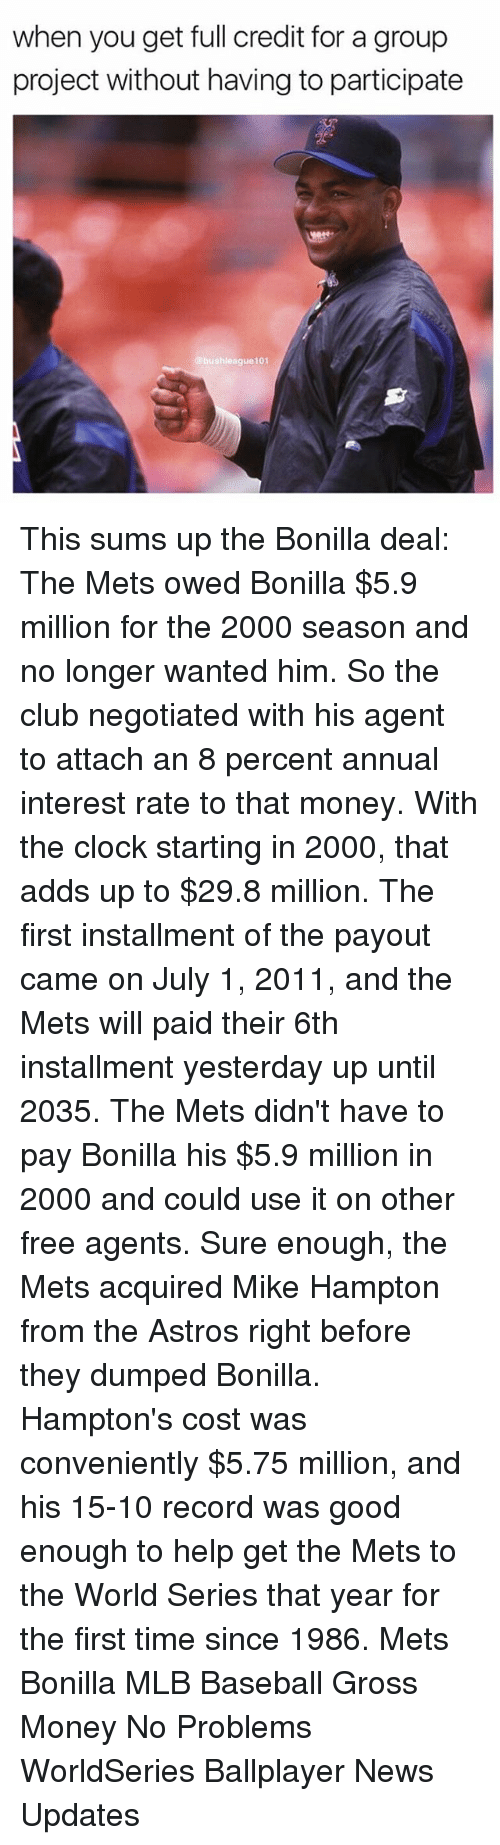 Astros: when you get full credit for a group  project without having to participate  bushleague101 This sums up the Bonilla deal: The Mets owed Bonilla $5.9 million for the 2000 season and no longer wanted him. So the club negotiated with his agent to attach an 8 percent annual interest rate to that money. With the clock starting in 2000, that adds up to $29.8 million. The first installment of the payout came on July 1, 2011, and the Mets will paid their 6th installment yesterday up until 2035. The Mets didn't have to pay Bonilla his $5.9 million in 2000 and could use it on other free agents. Sure enough, the Mets acquired Mike Hampton from the Astros right before they dumped Bonilla. Hampton's cost was conveniently $5.75 million, and his 15-10 record was good enough to help get the Mets to the World Series that year for the first time since 1986. Mets Bonilla MLB Baseball Gross Money No Problems WorldSeries Ballplayer News Updates